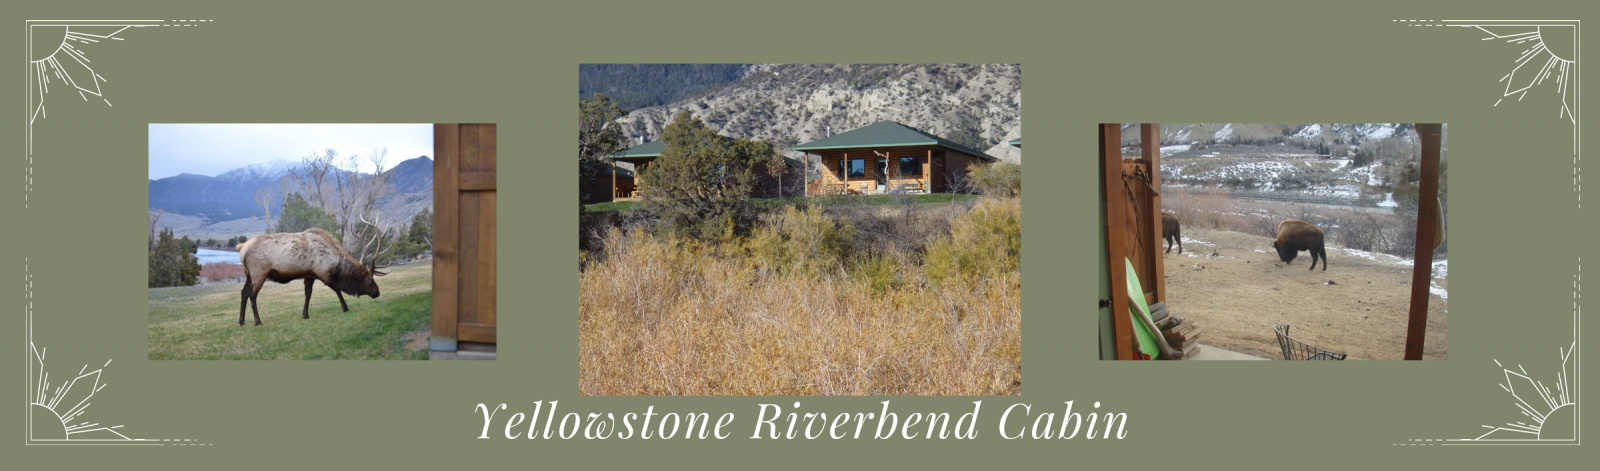 Yellowstone Riverbend Cabin